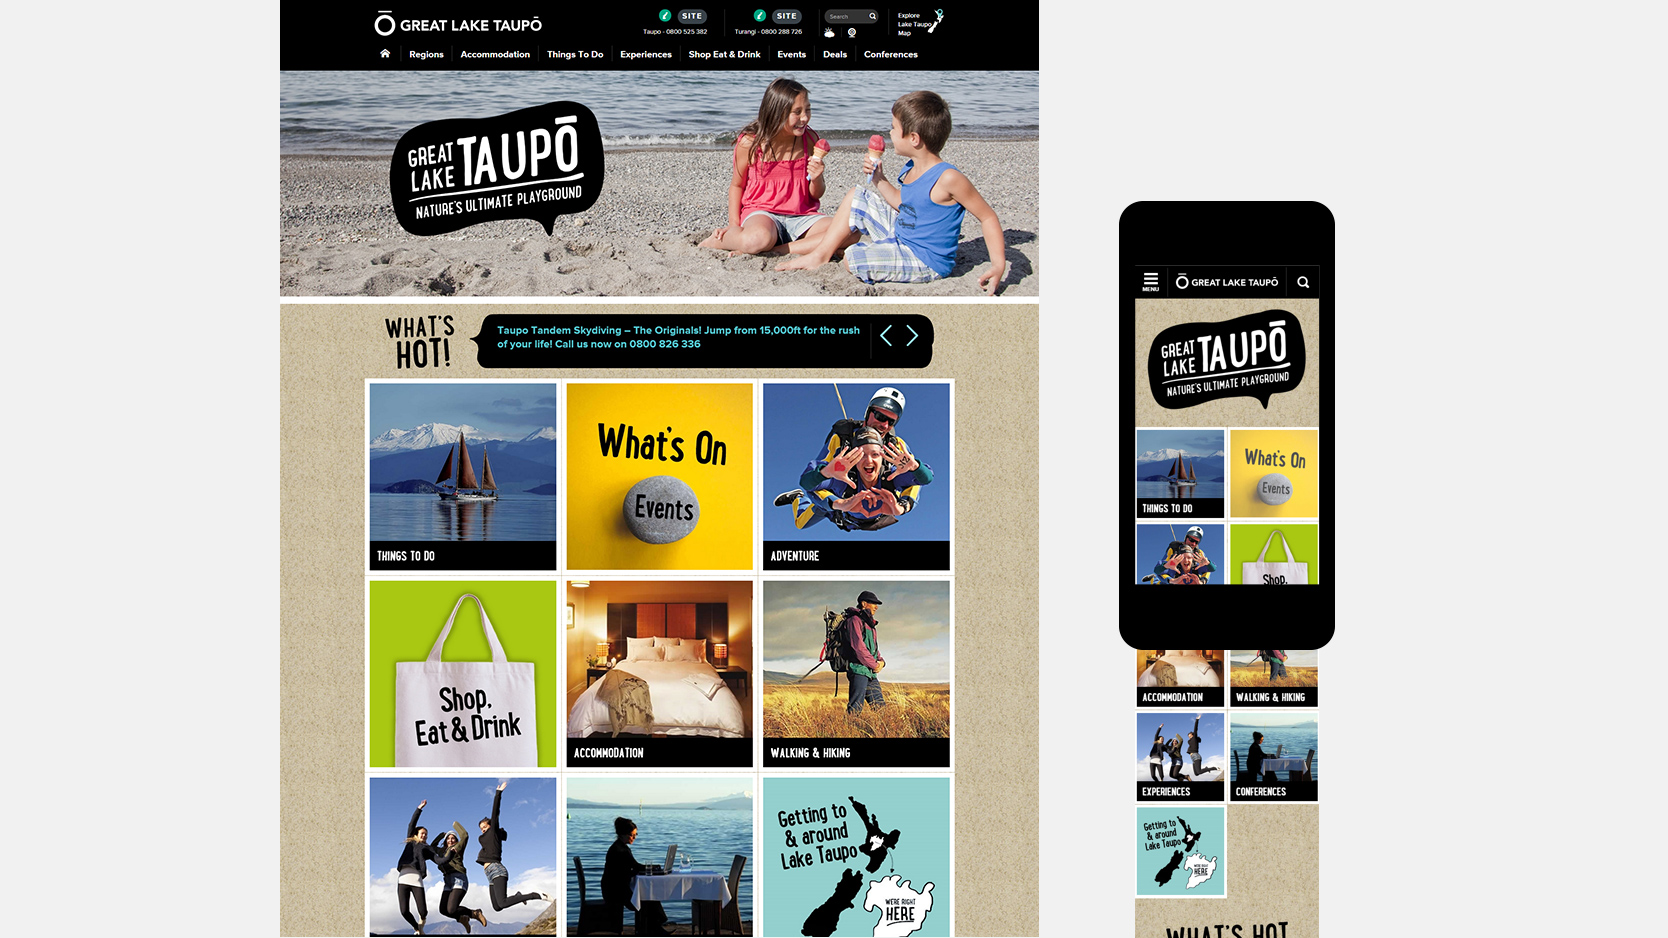 Destination Great Lake Taupo Responsive Homepage.jpg